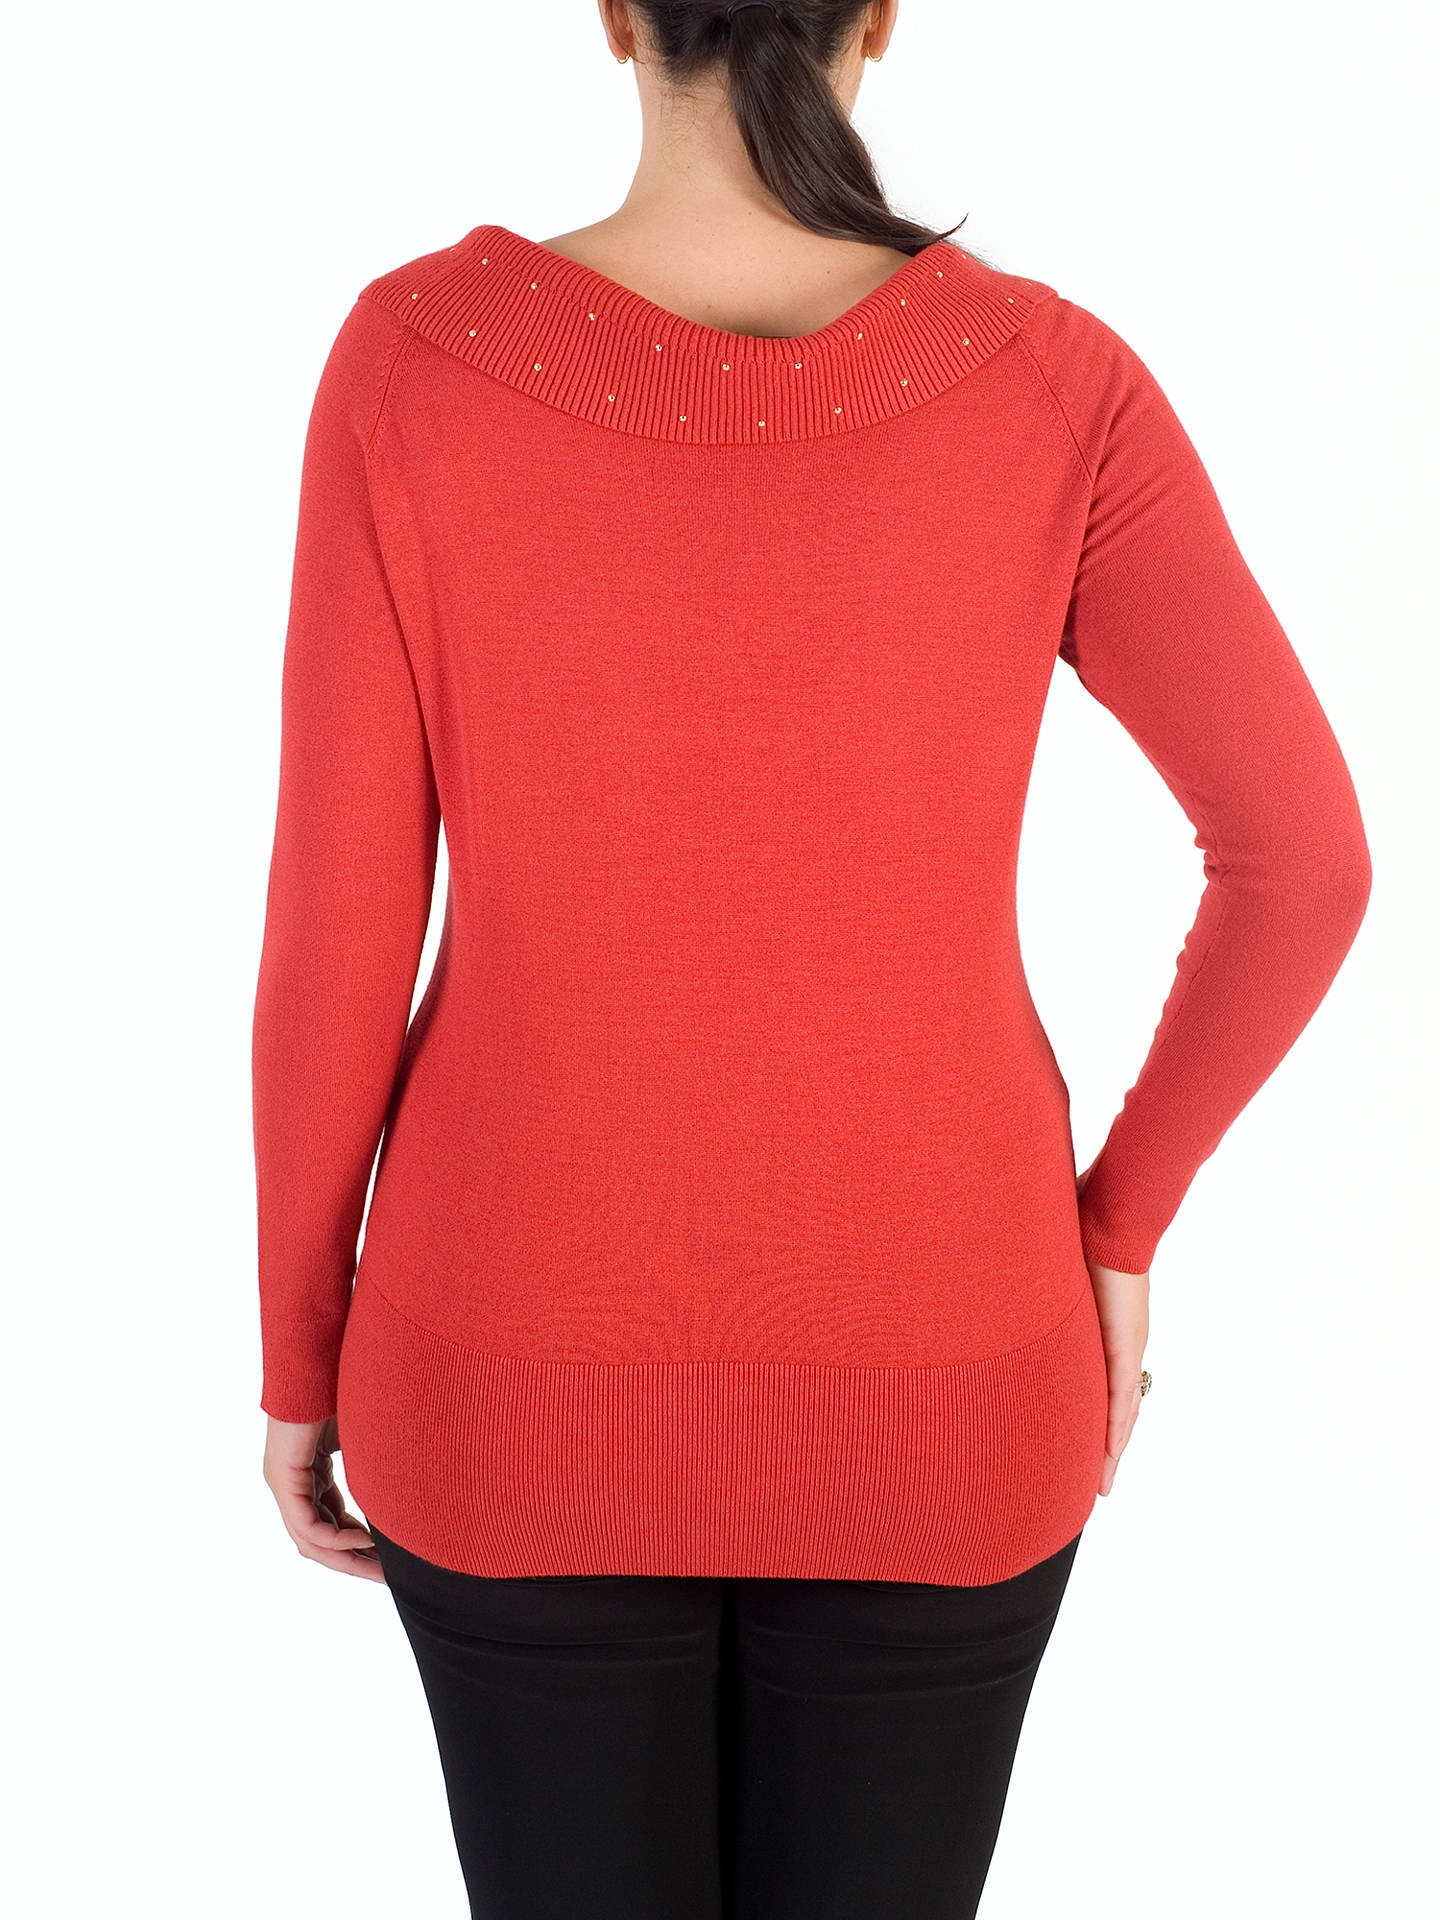 BuyChesca Studded Collar Jumper, Orange, 12-14 Online at johnlewis.com